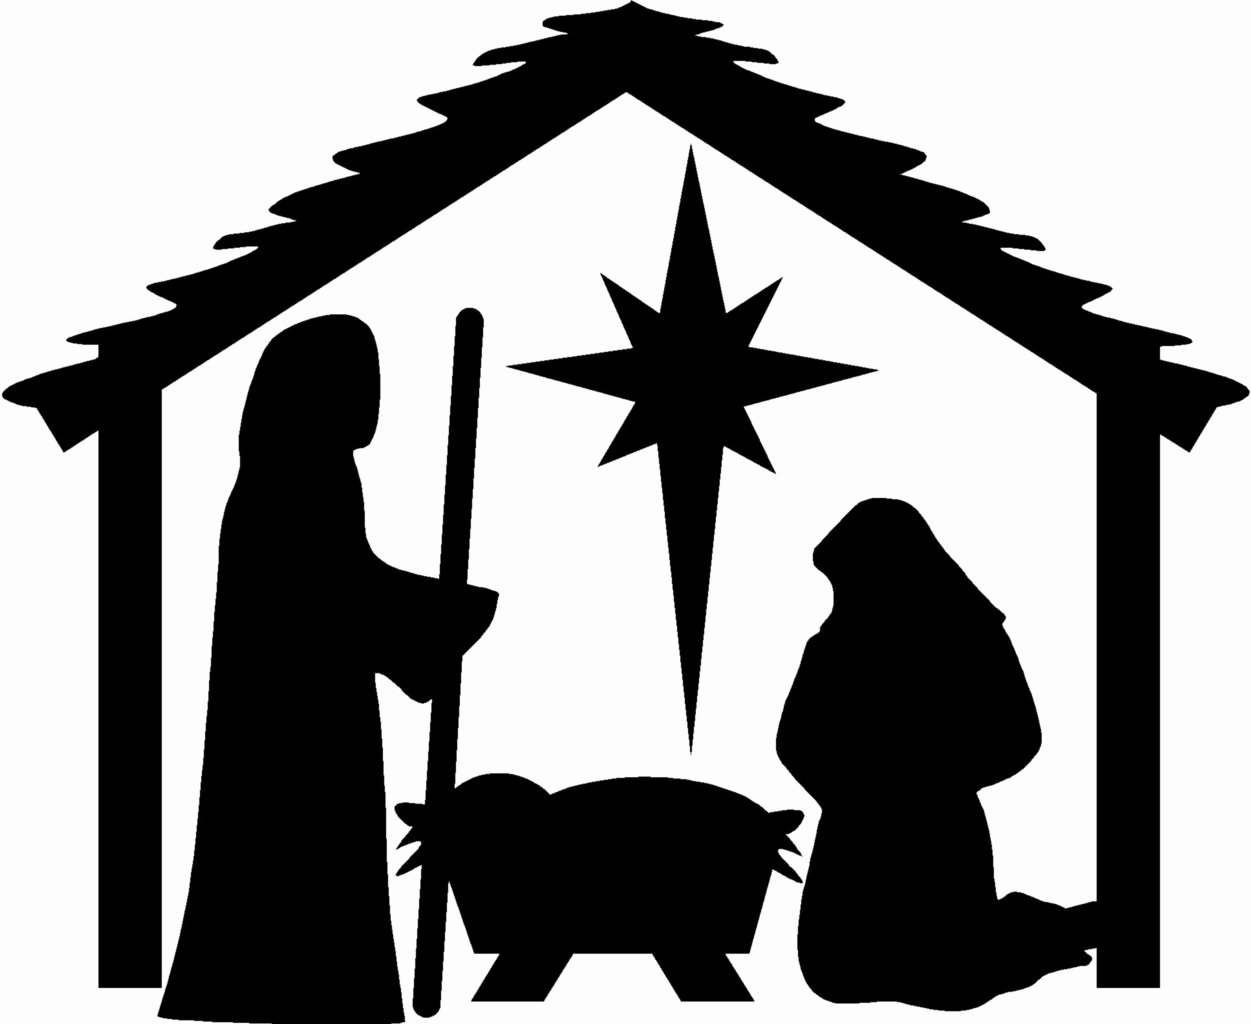 Nativity Silhouette Patterns Awesome Nativity Christmas Wall Stickers Vinyl Decal Decor Art